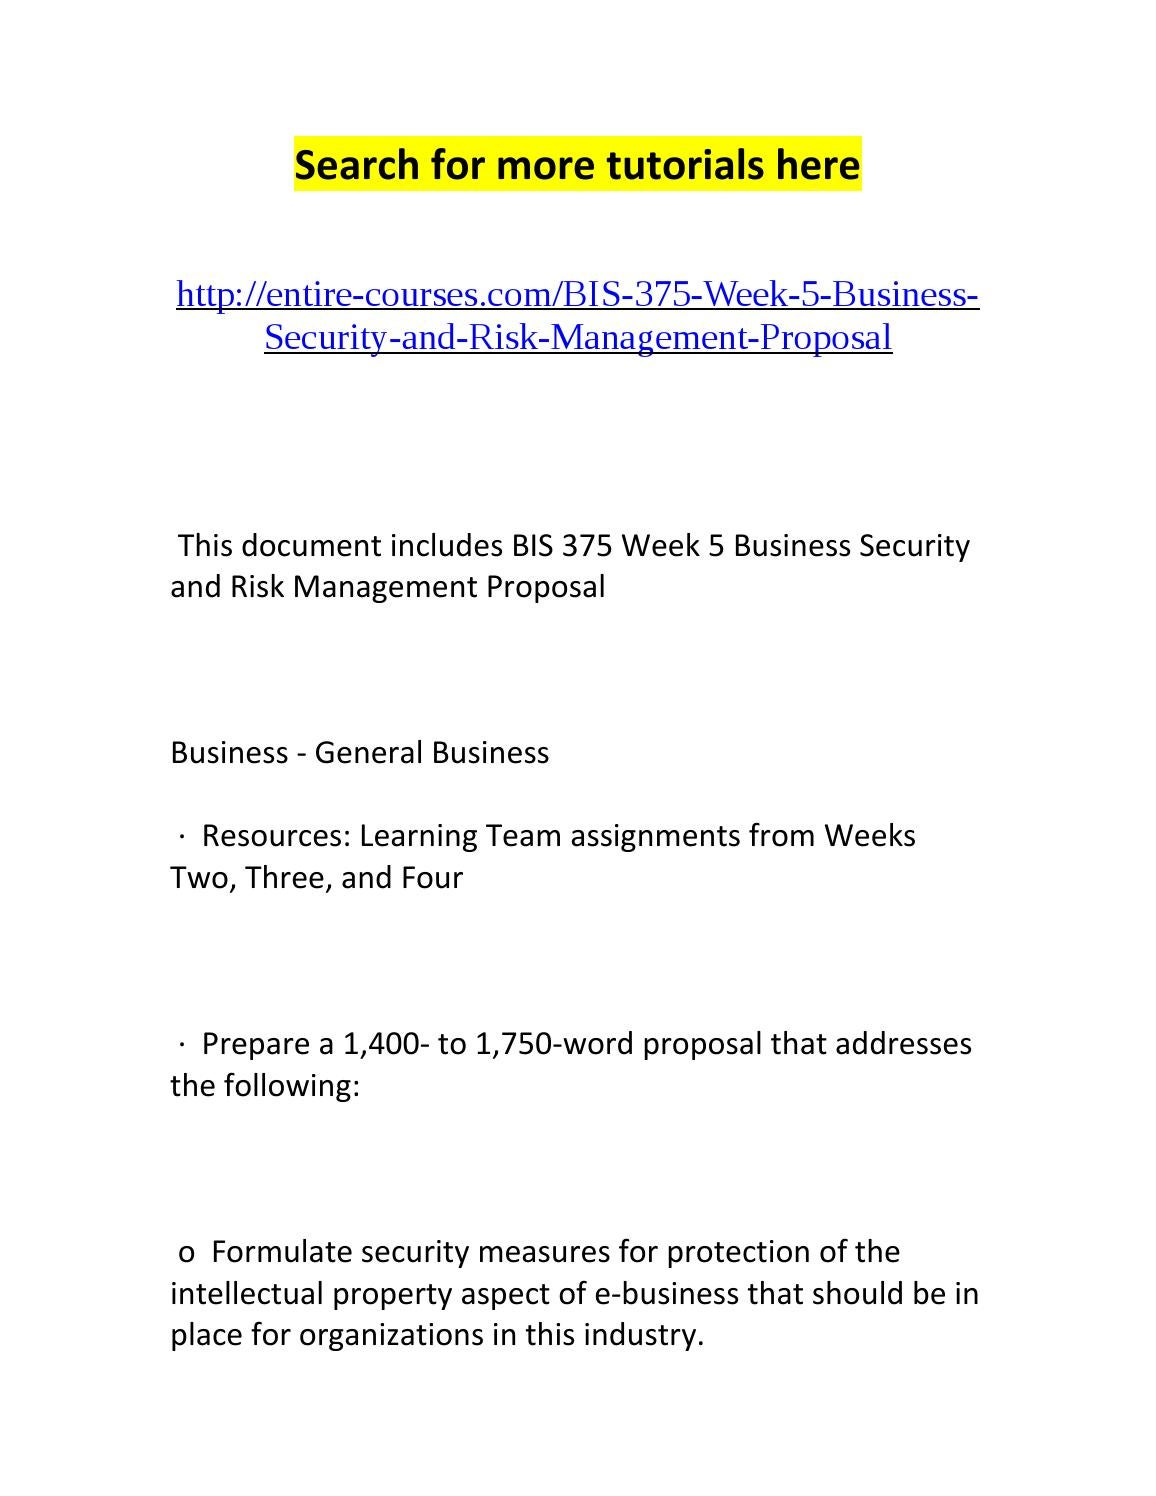 bis 375 week 5 business security Bis 375 week 5 lt e-business security and risk management proposal presentationpptx bis 375 week 5 lt e-business security and risk management proposal bis 375 week 5 summary.